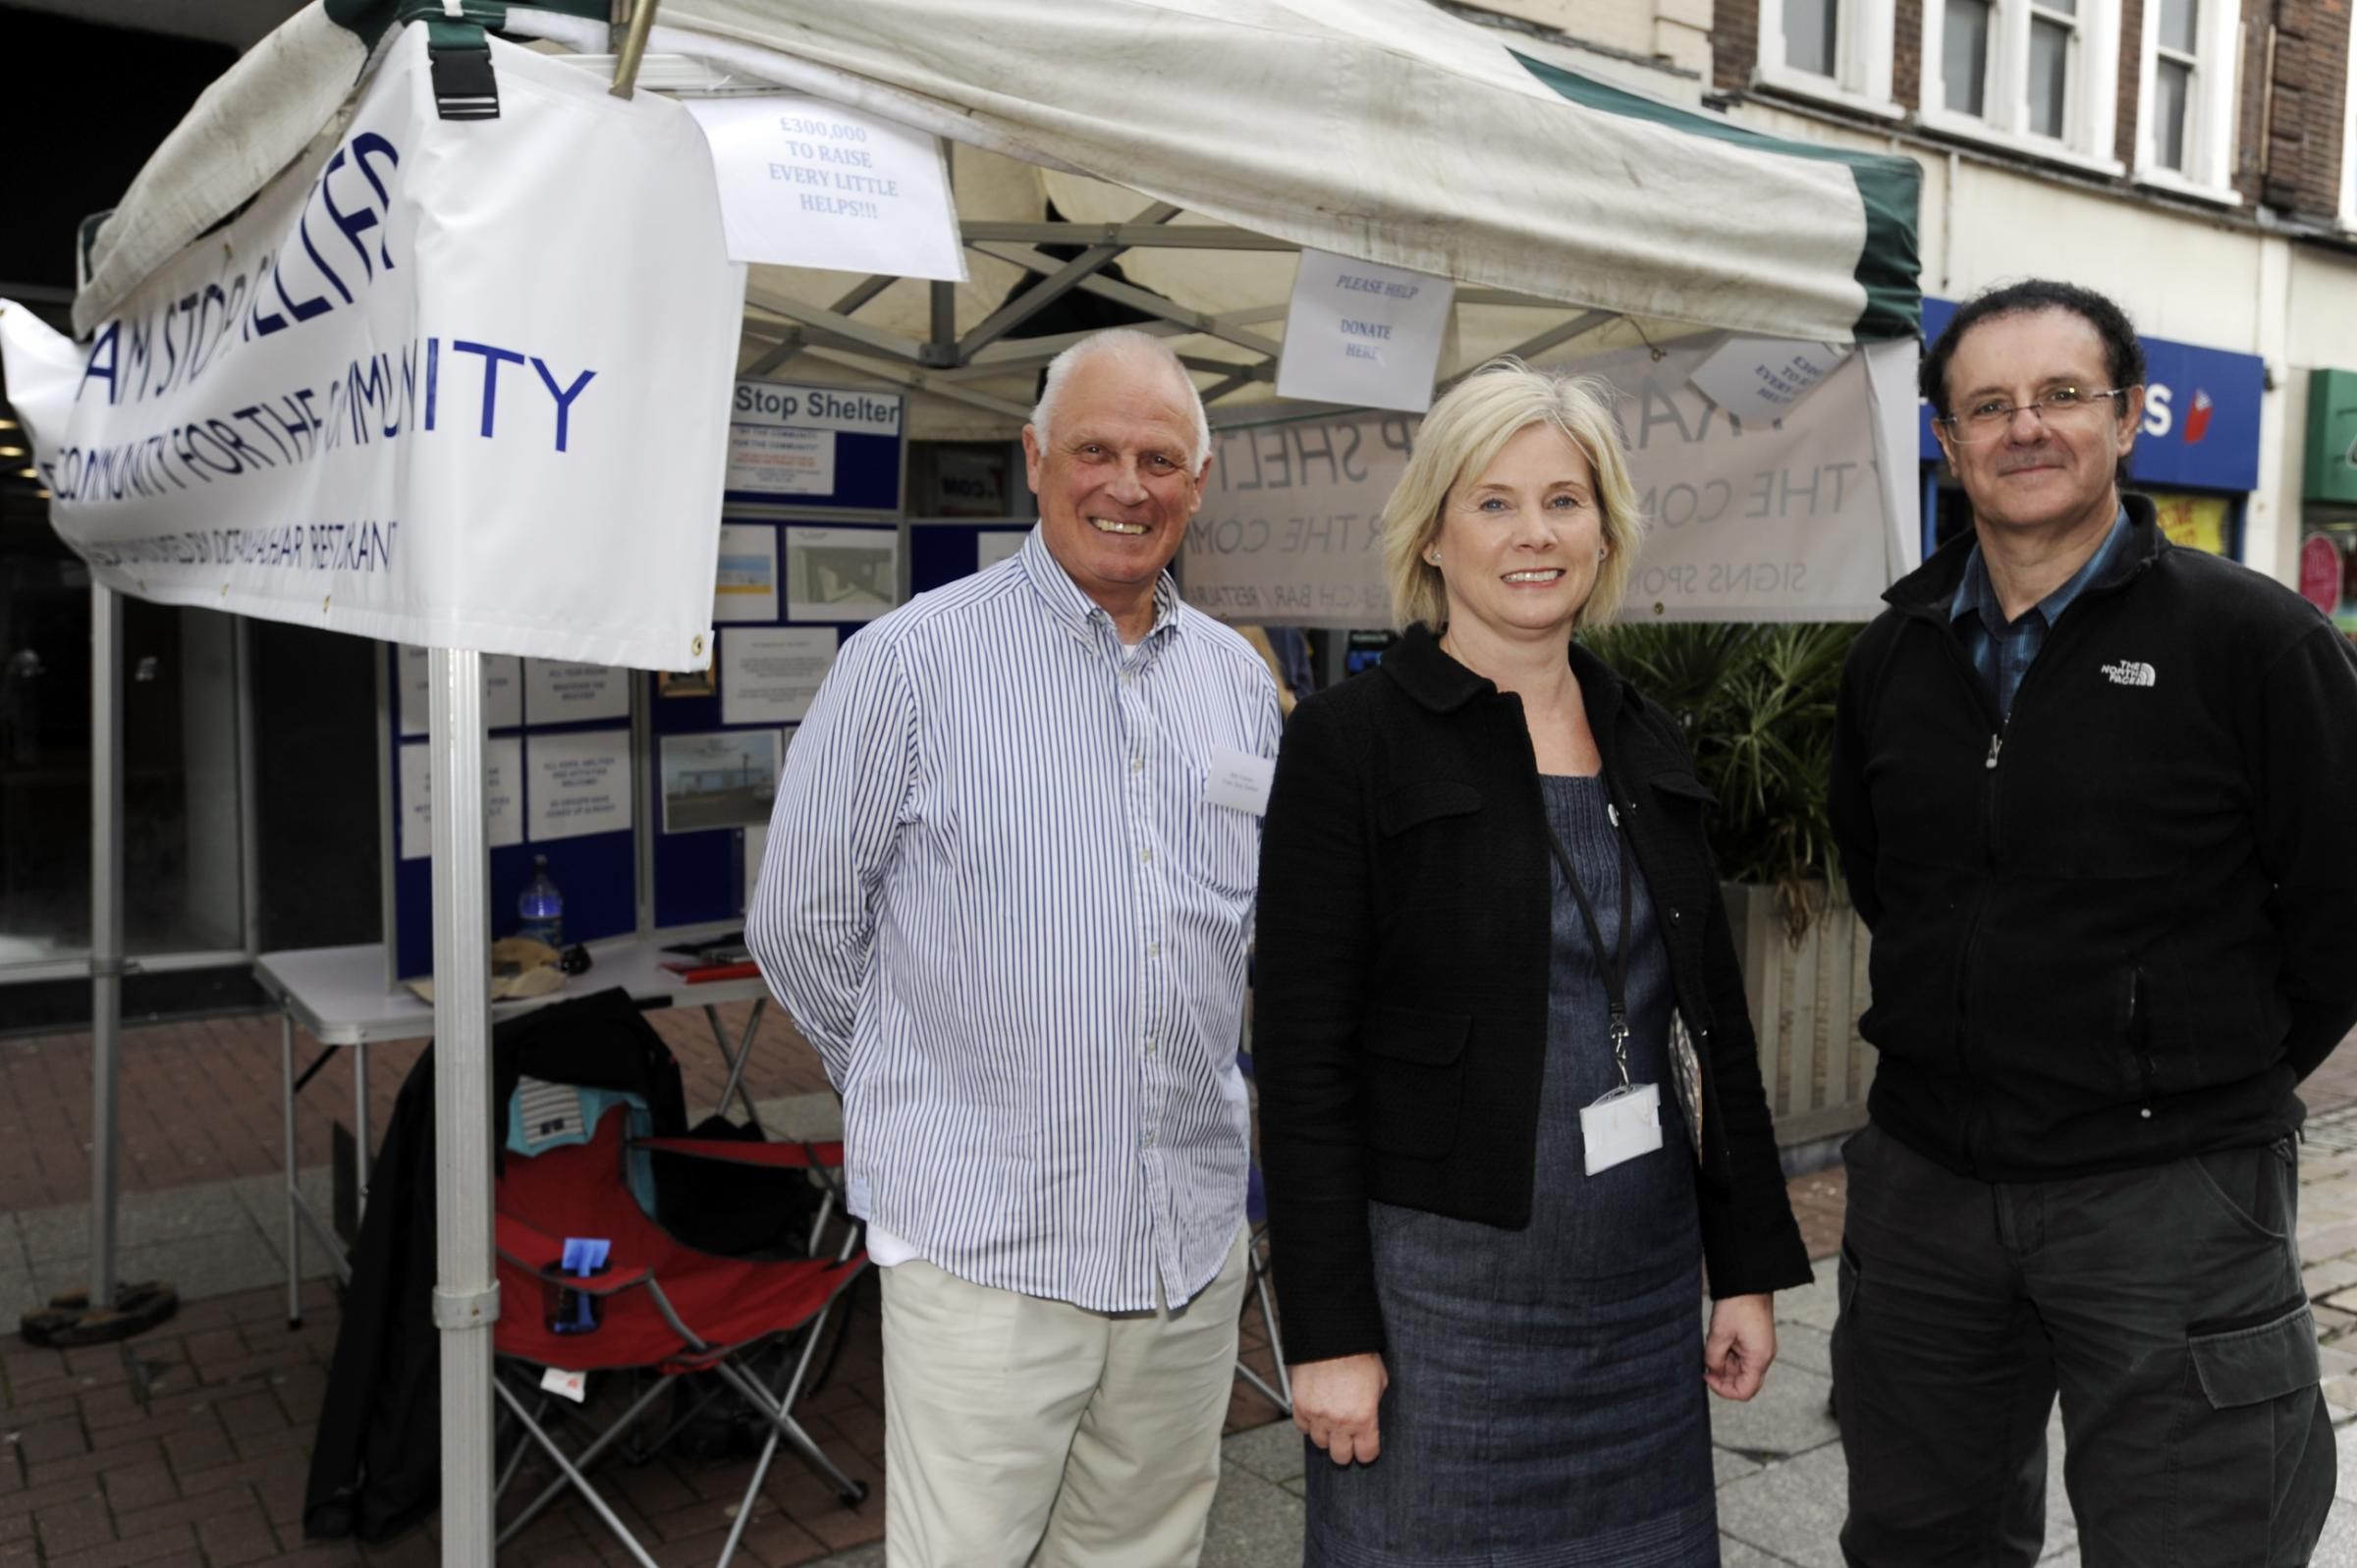 On track – Tram Stop's Bob Craven and Frank Summers with Alison Semmence, chief officer at Southend's volunteer centre